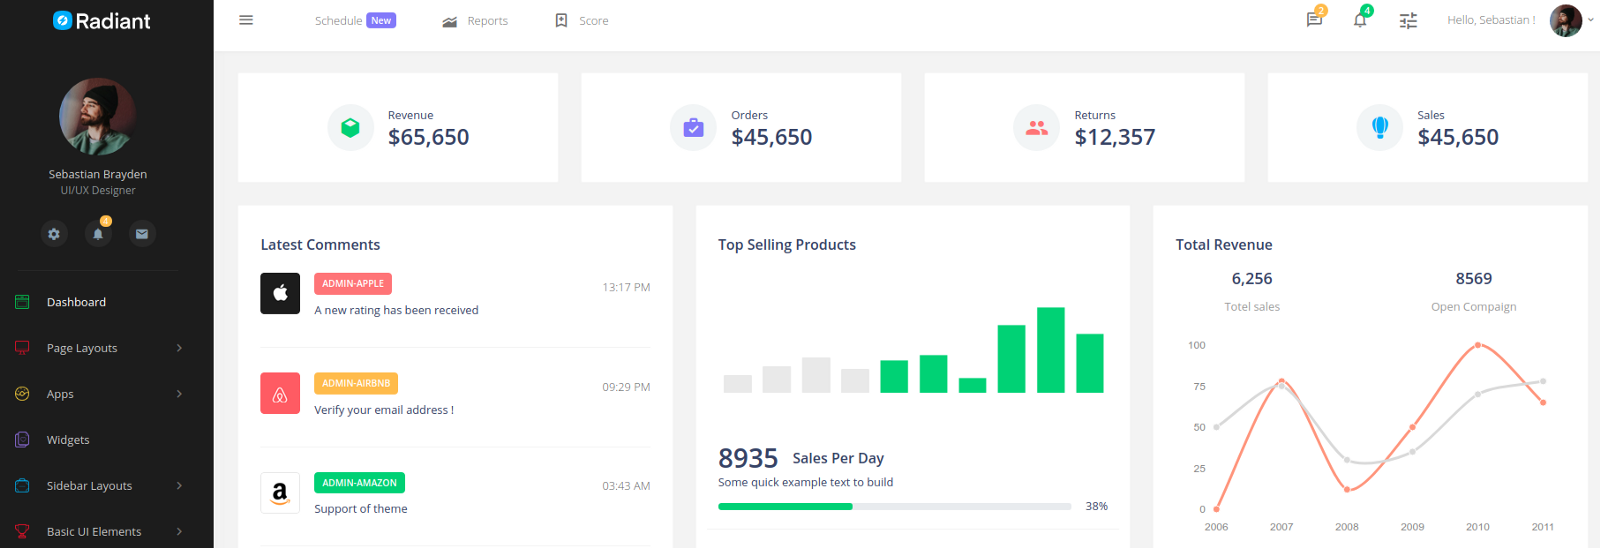 21 popular angularjs admin templates bootstrapdashs blog medium it is a fully responsive bootstrap admin templatebootstrap admin dashboard template that comes maxwellsz